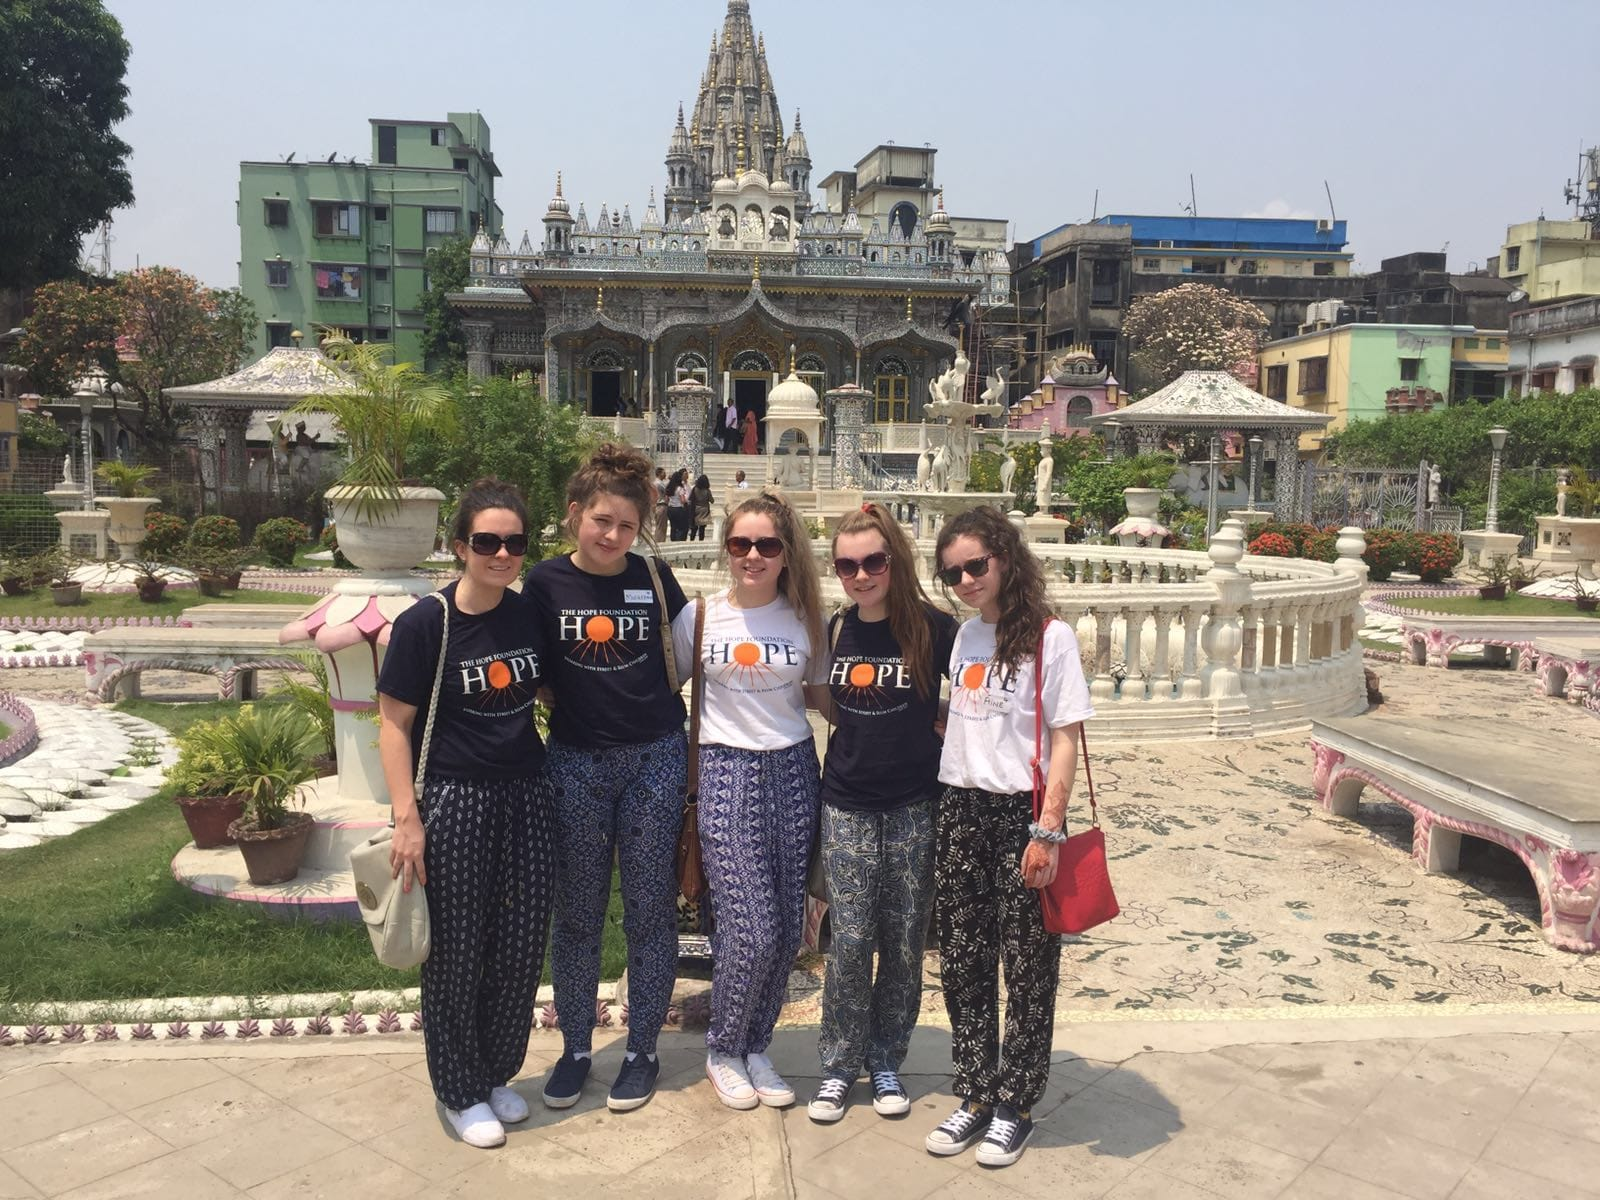 April 2016: The Desmond College teacher and students had an opportunity to explore the beauty of Kolkata on their trip this Easter